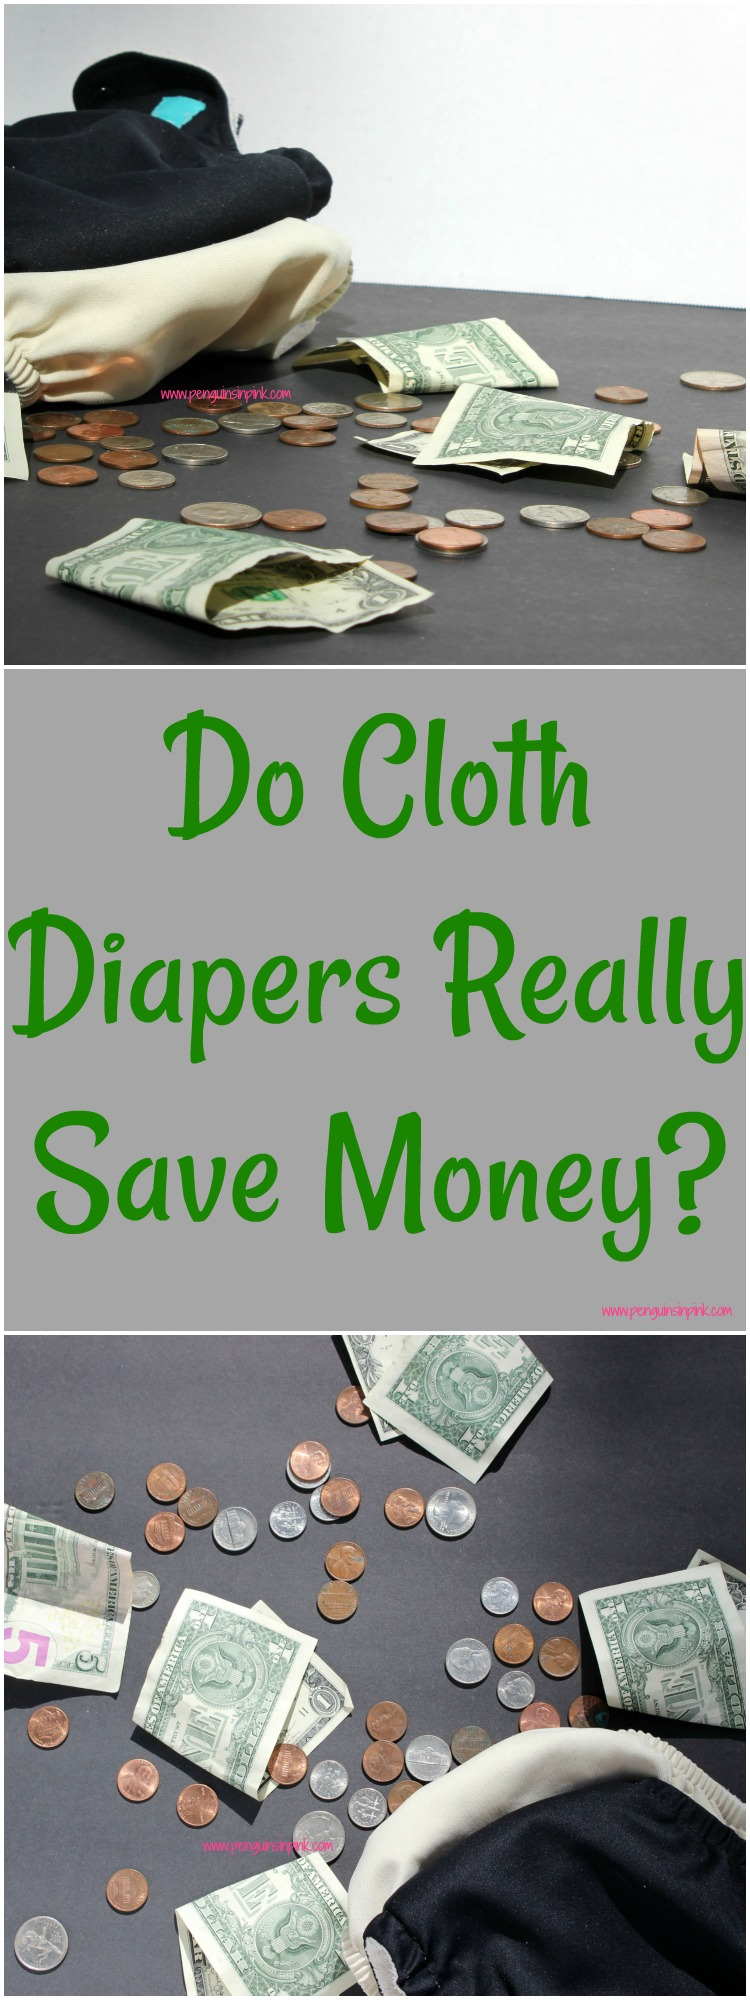 Do cloth diapers really save money? Yes! Check out this comparison of the cost of cloth diapers to disposables to see how cloth diapers save me $985 yearly for two babies.